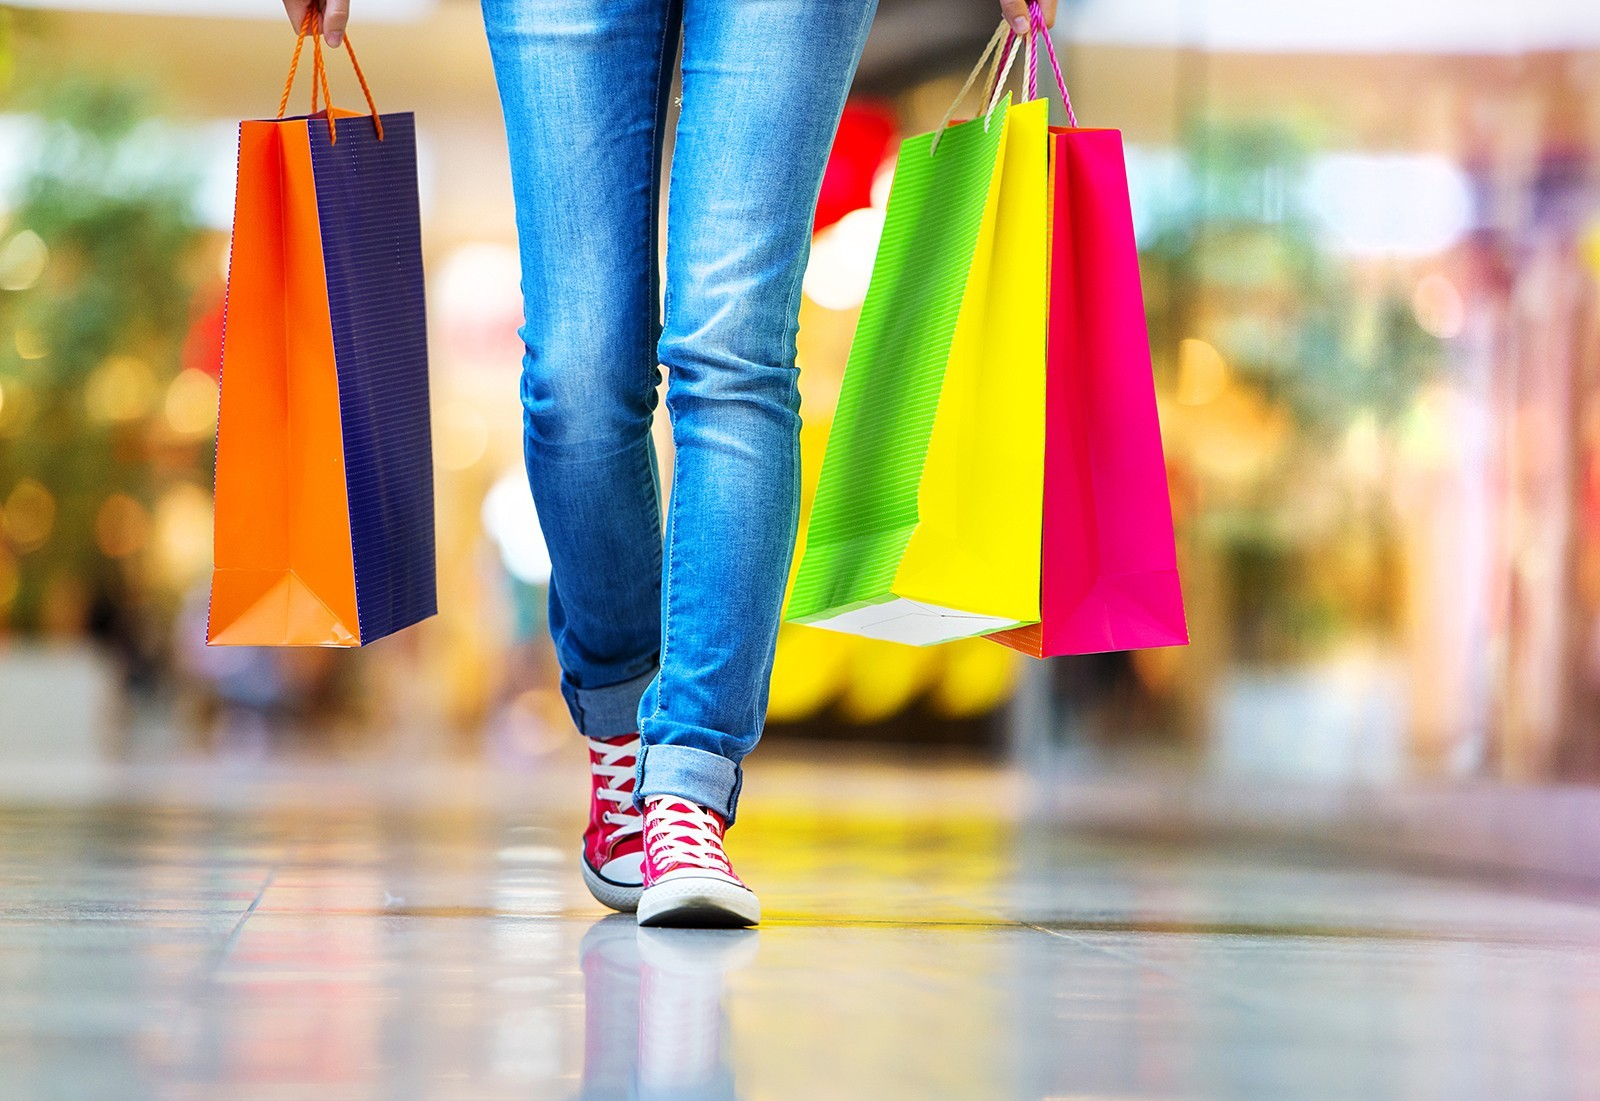 A ground level view of a woman wearing jeans and red converse holding multiple colourful shopping bags